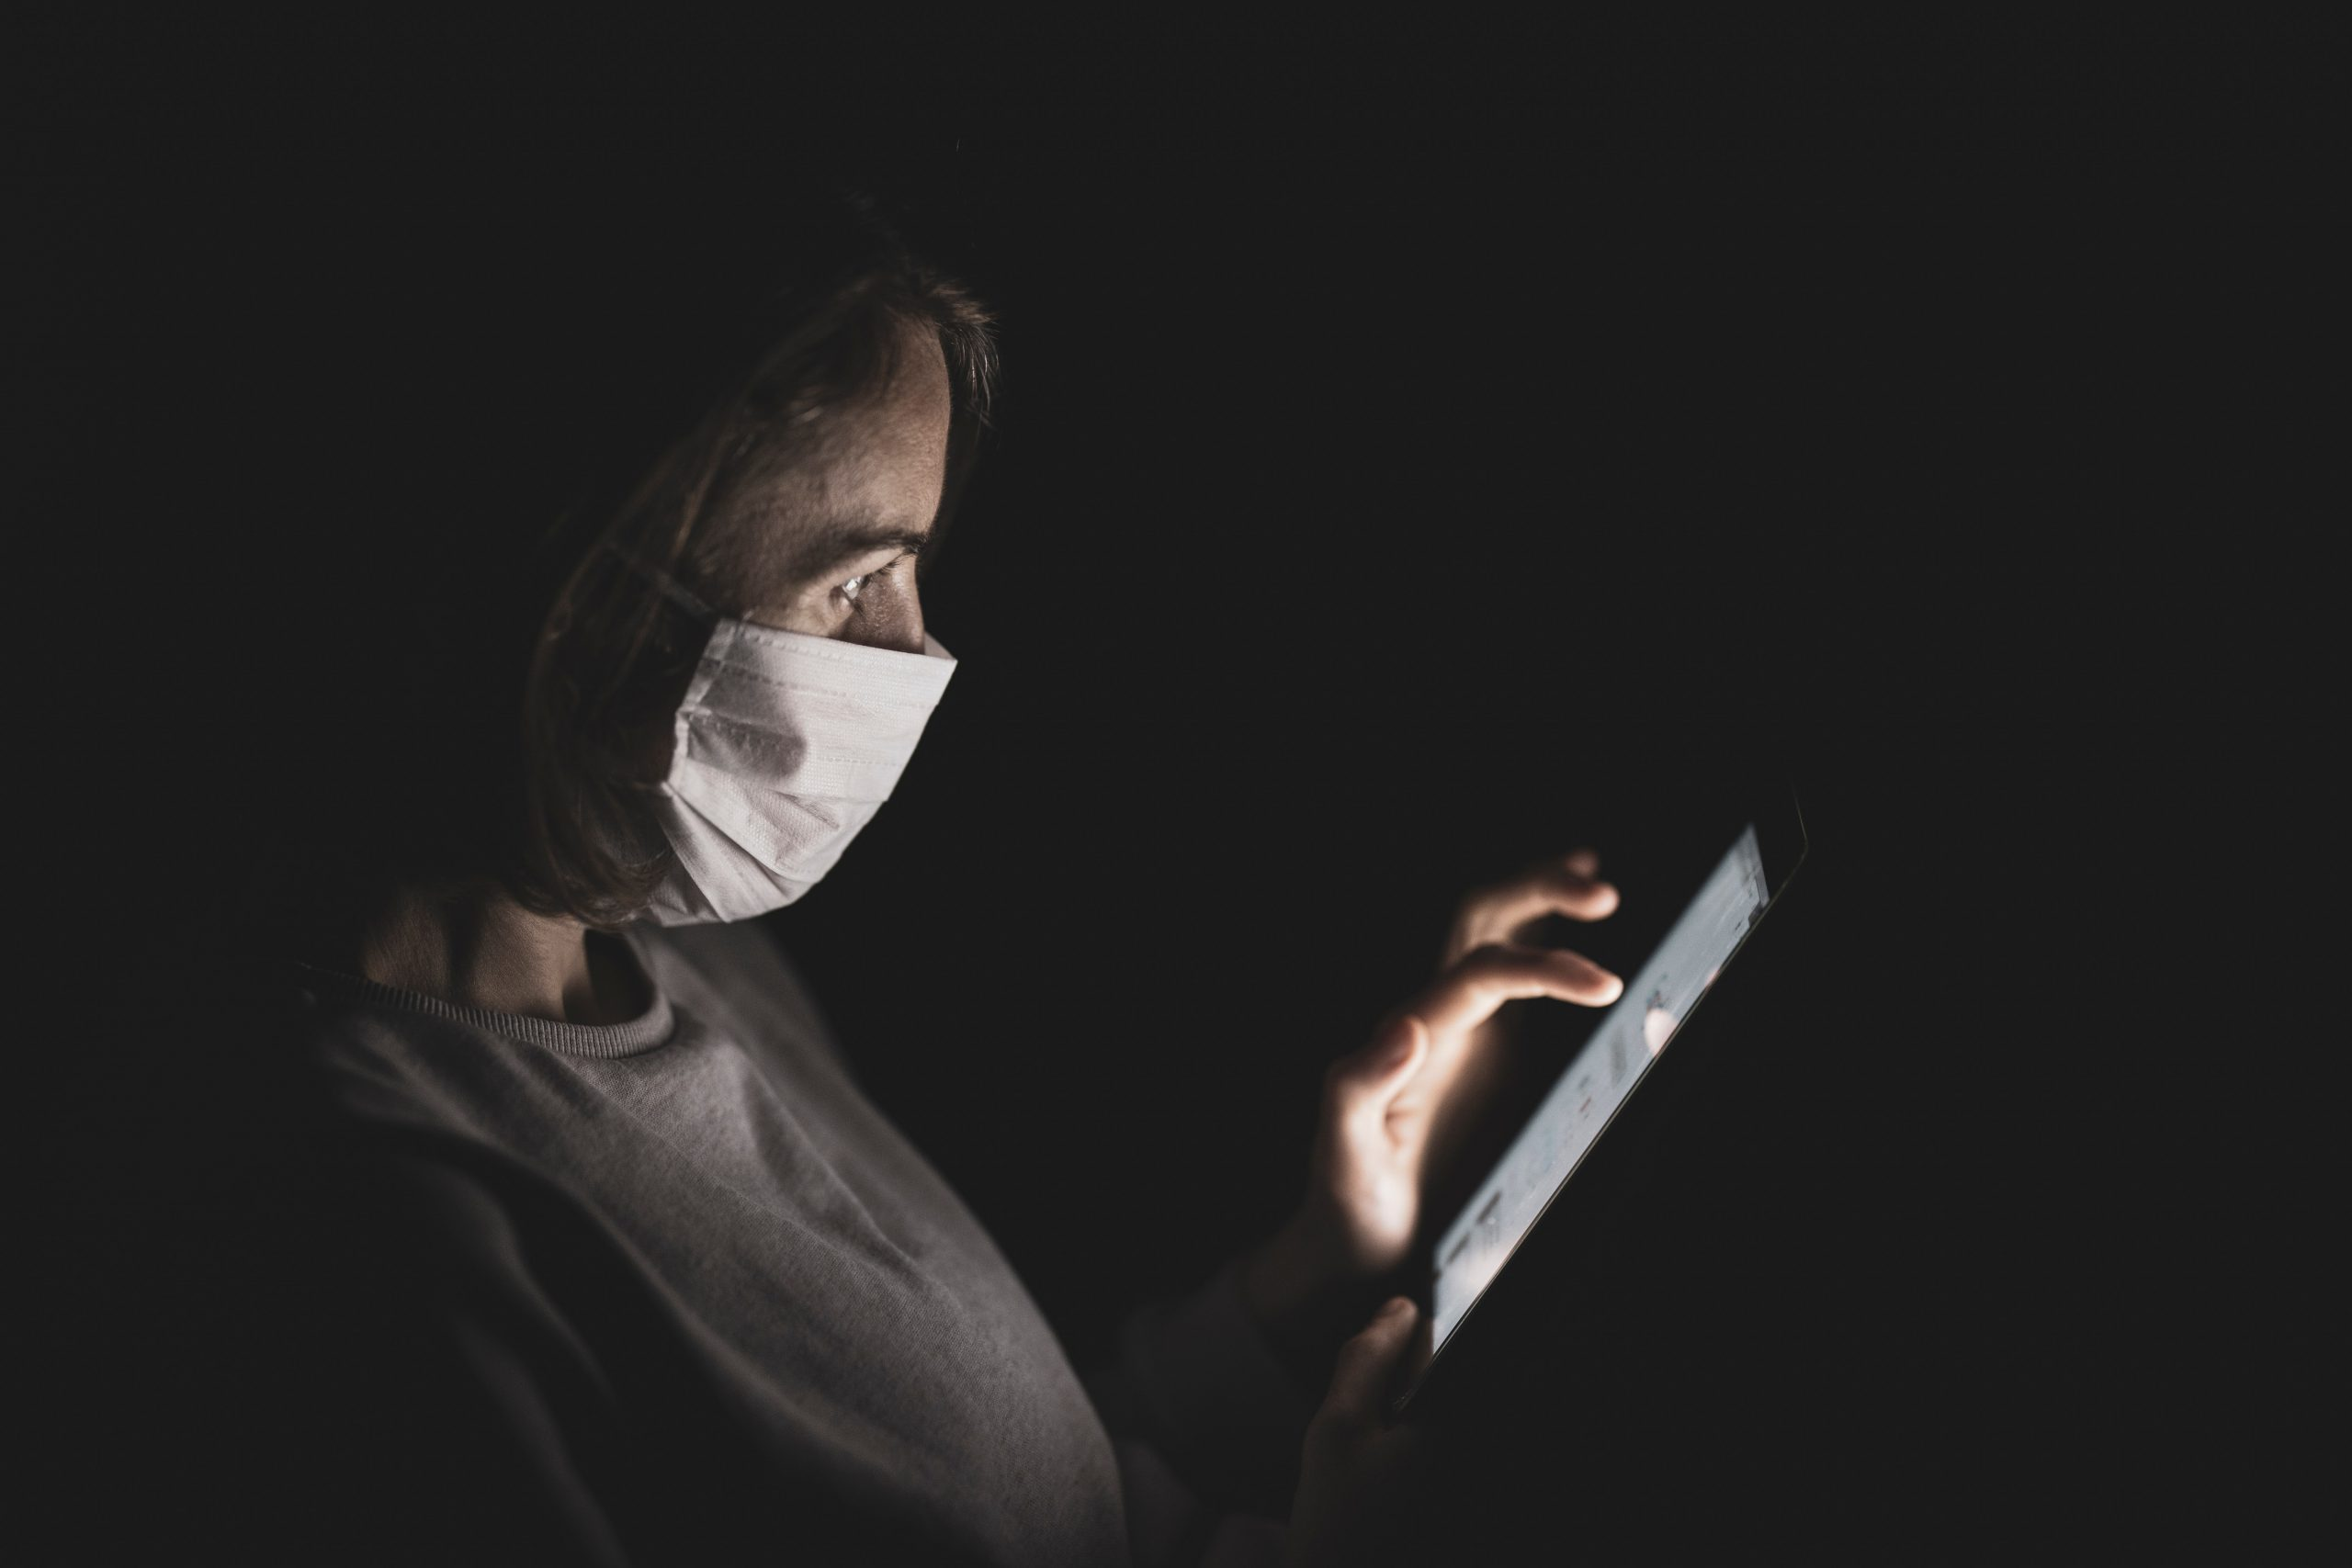 Woman with surgical mask using mobile phone